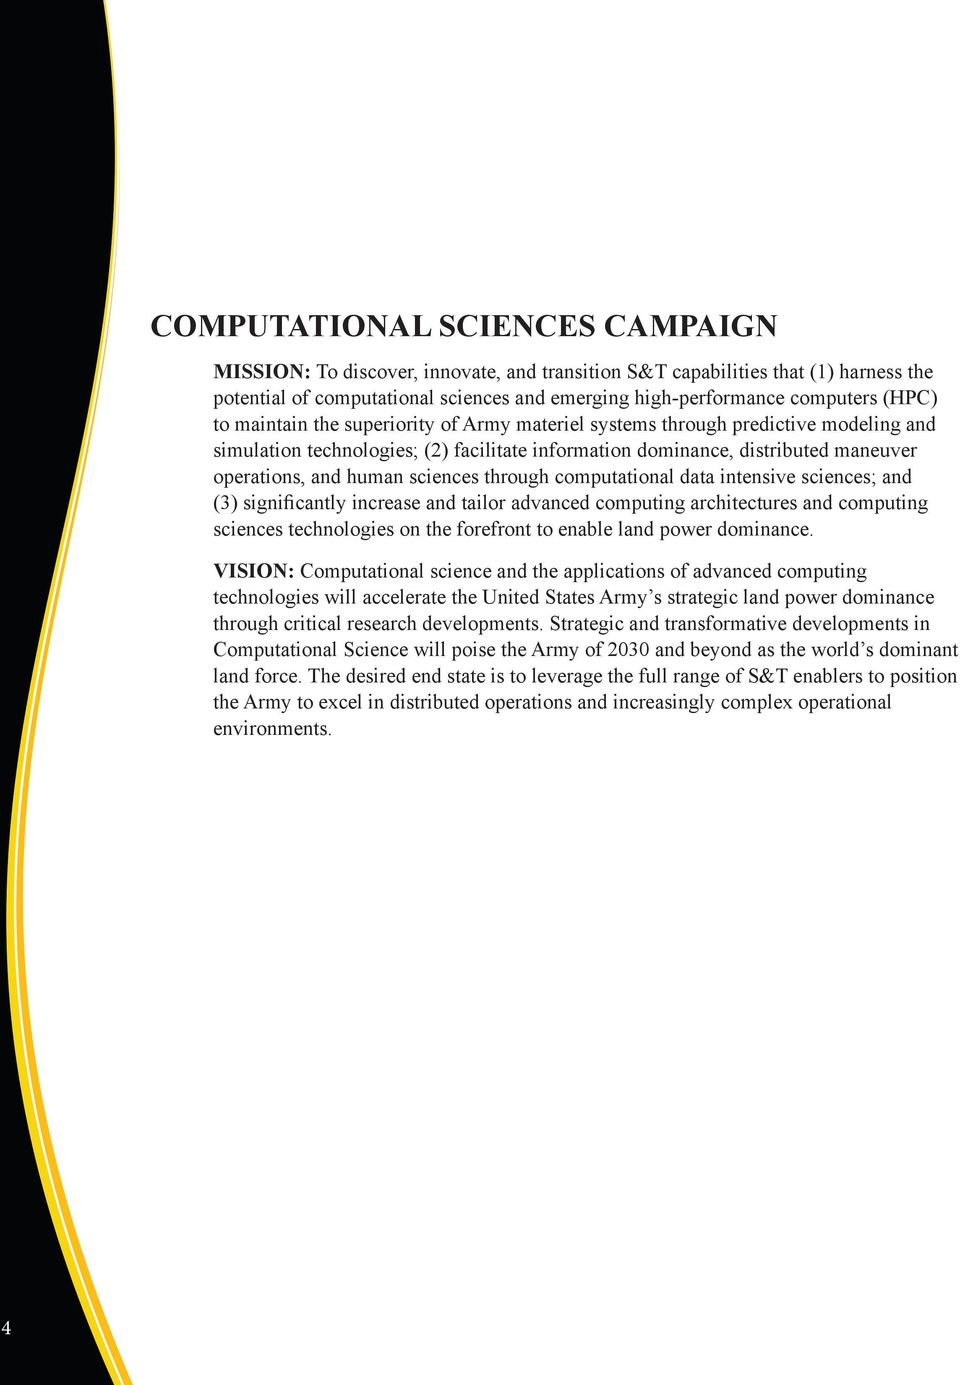 through computational data intensive sciences; and (3) significantly increase and tailor advanced computing architectures and computing sciences technologies on the forefront to enable land power